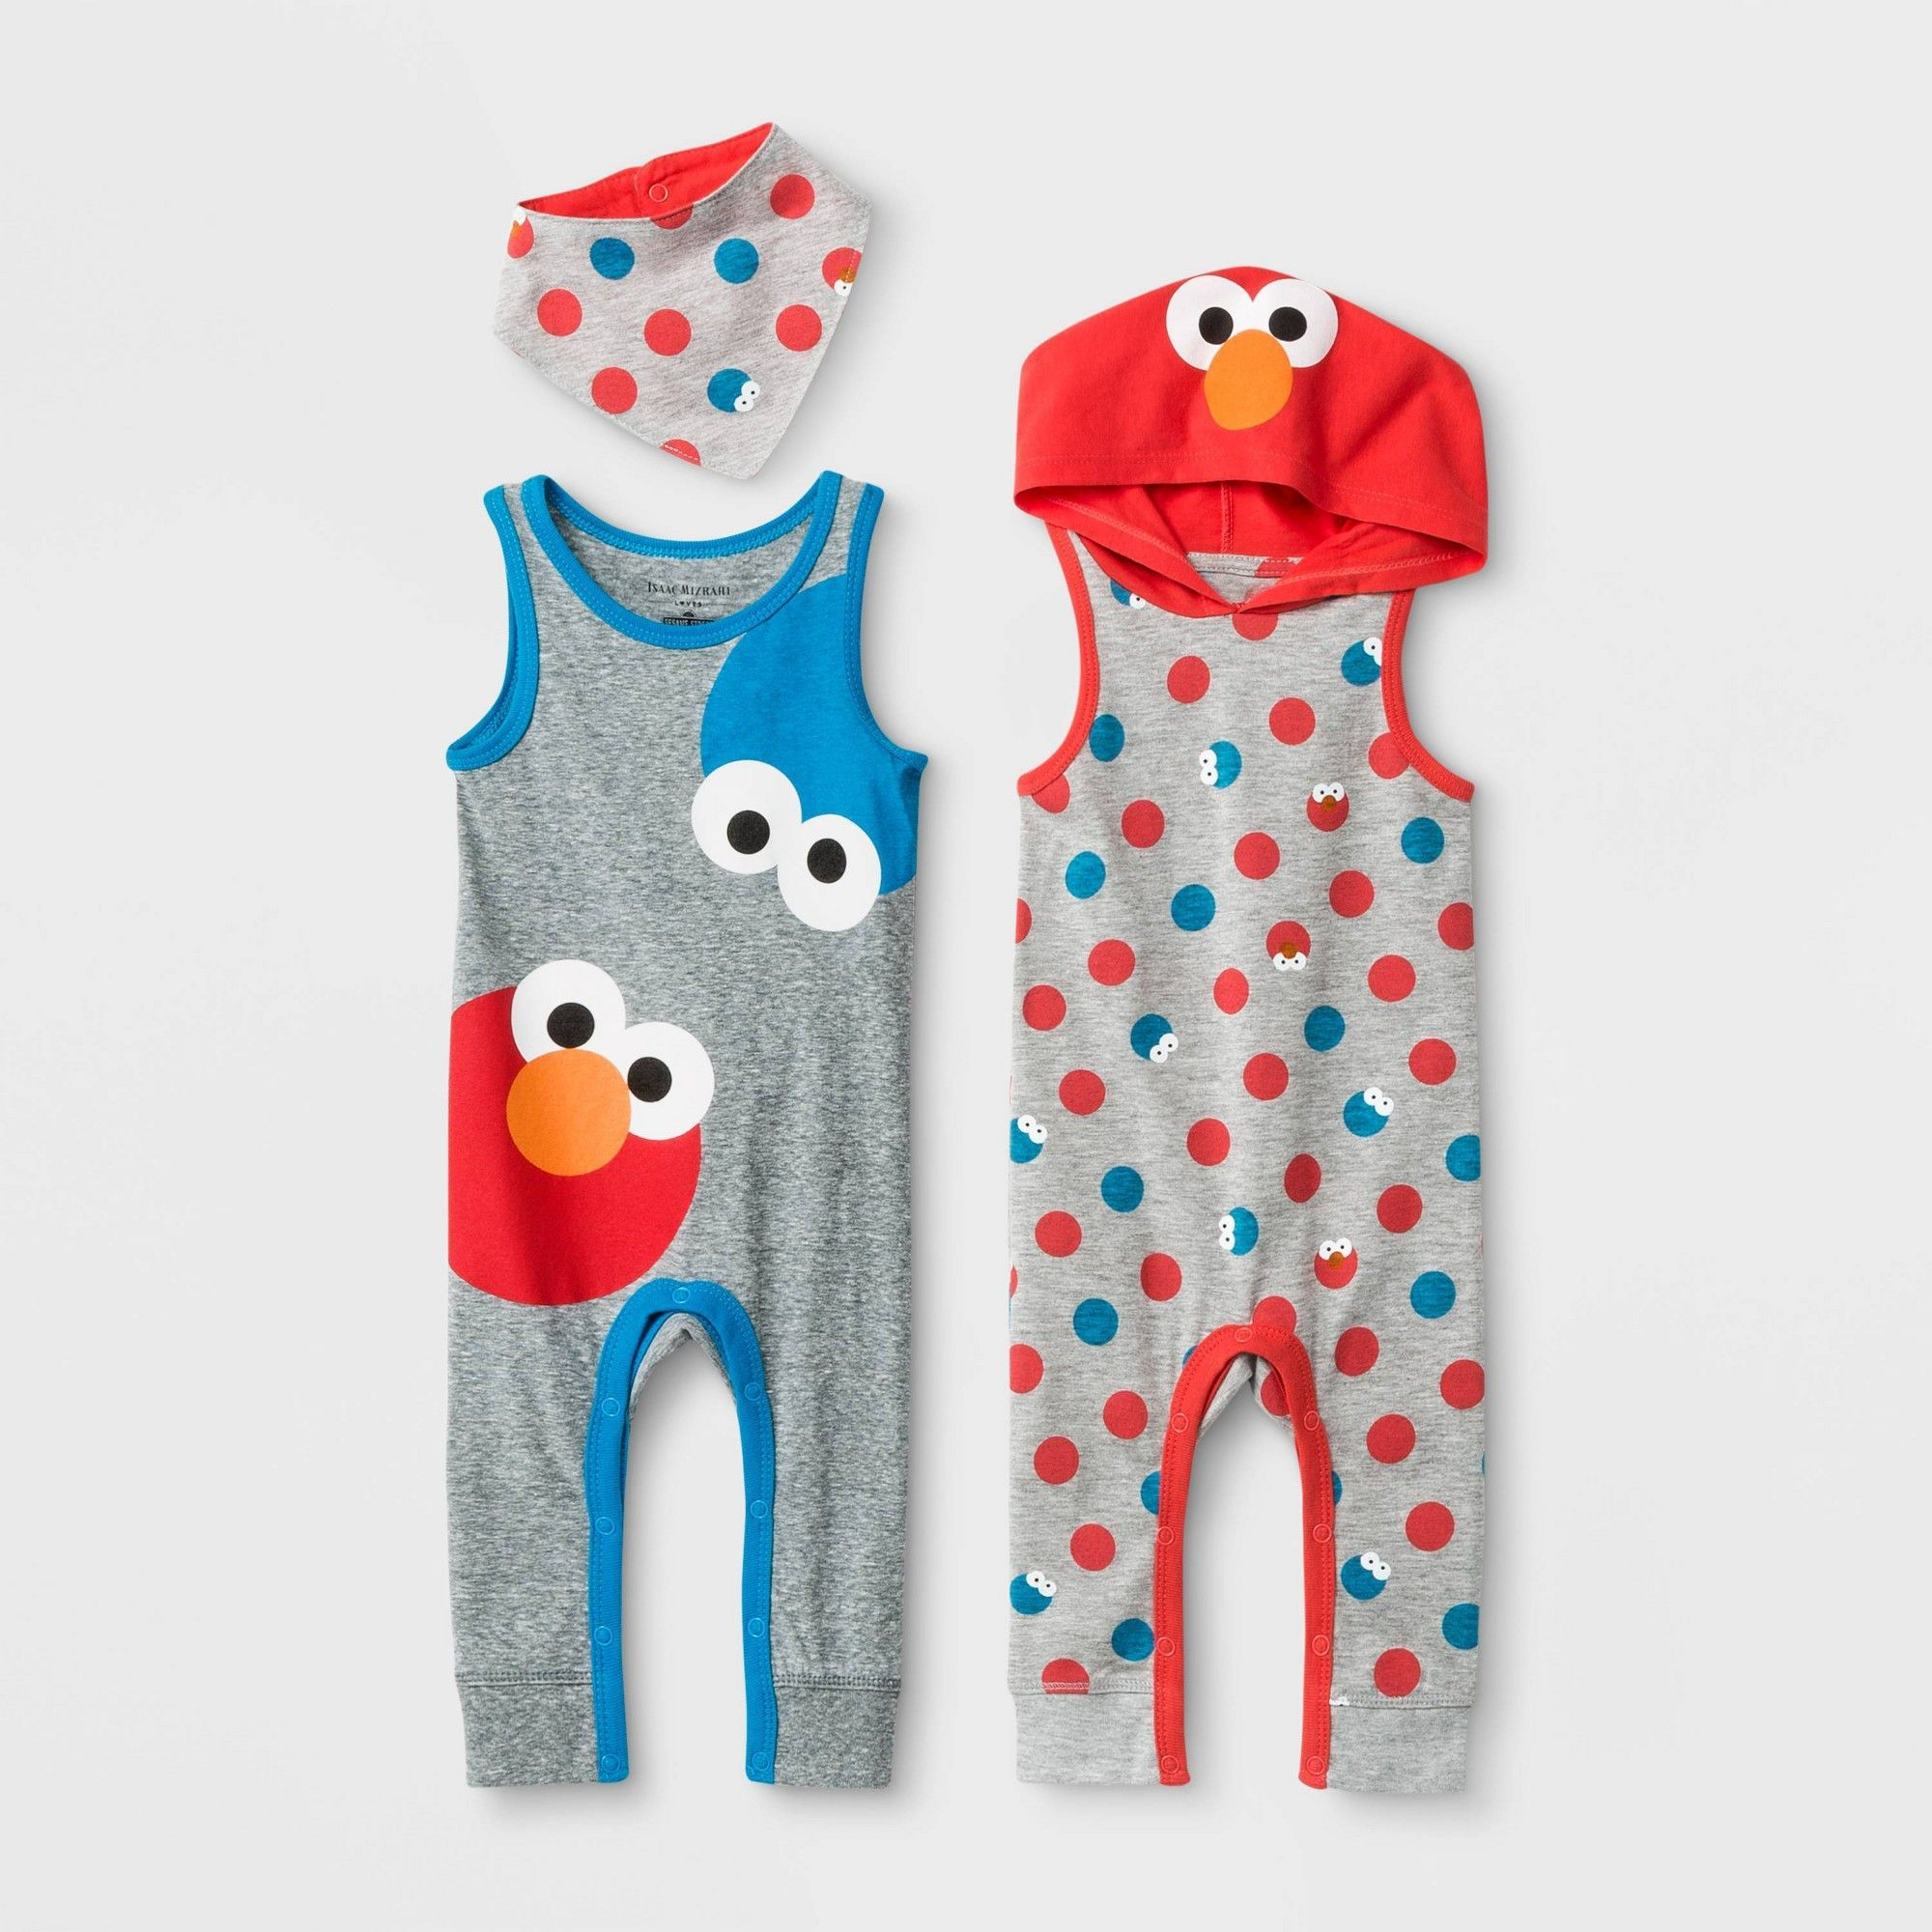 Baby Elmo Sesame Street  3 pc Bib Set   *Great Baby Shower Gift*